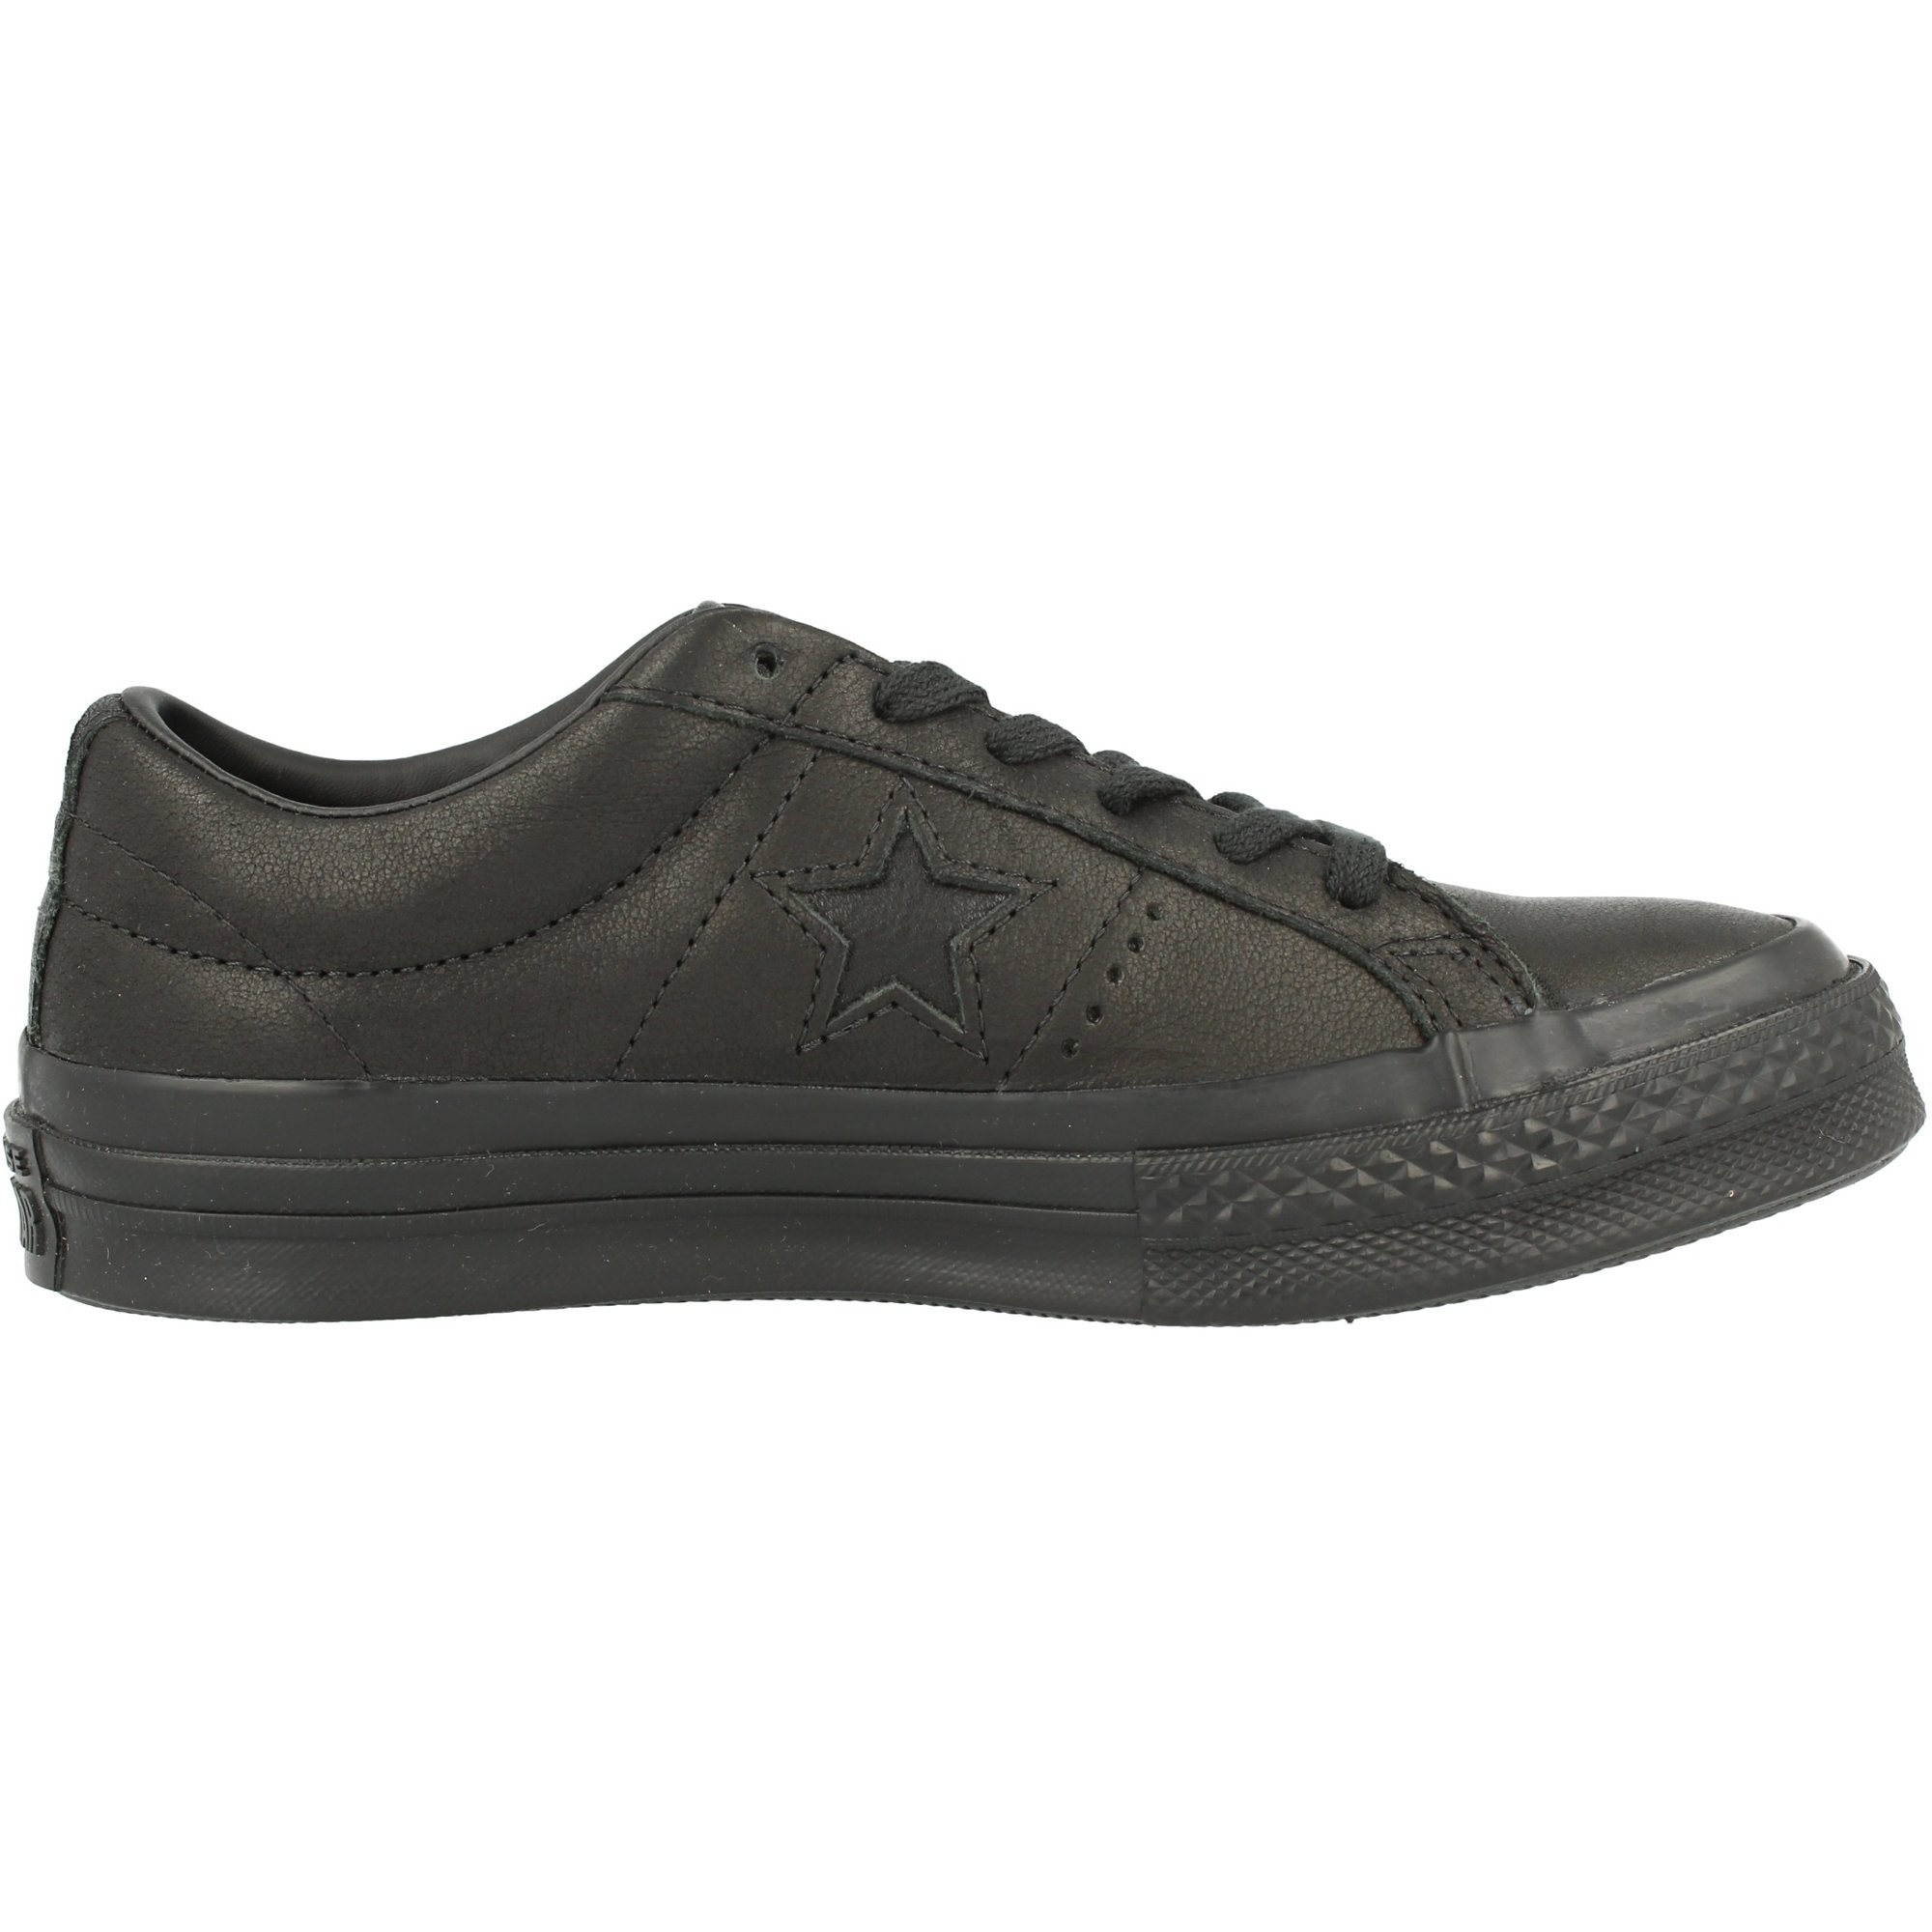 converse sneakers one star ox cuero